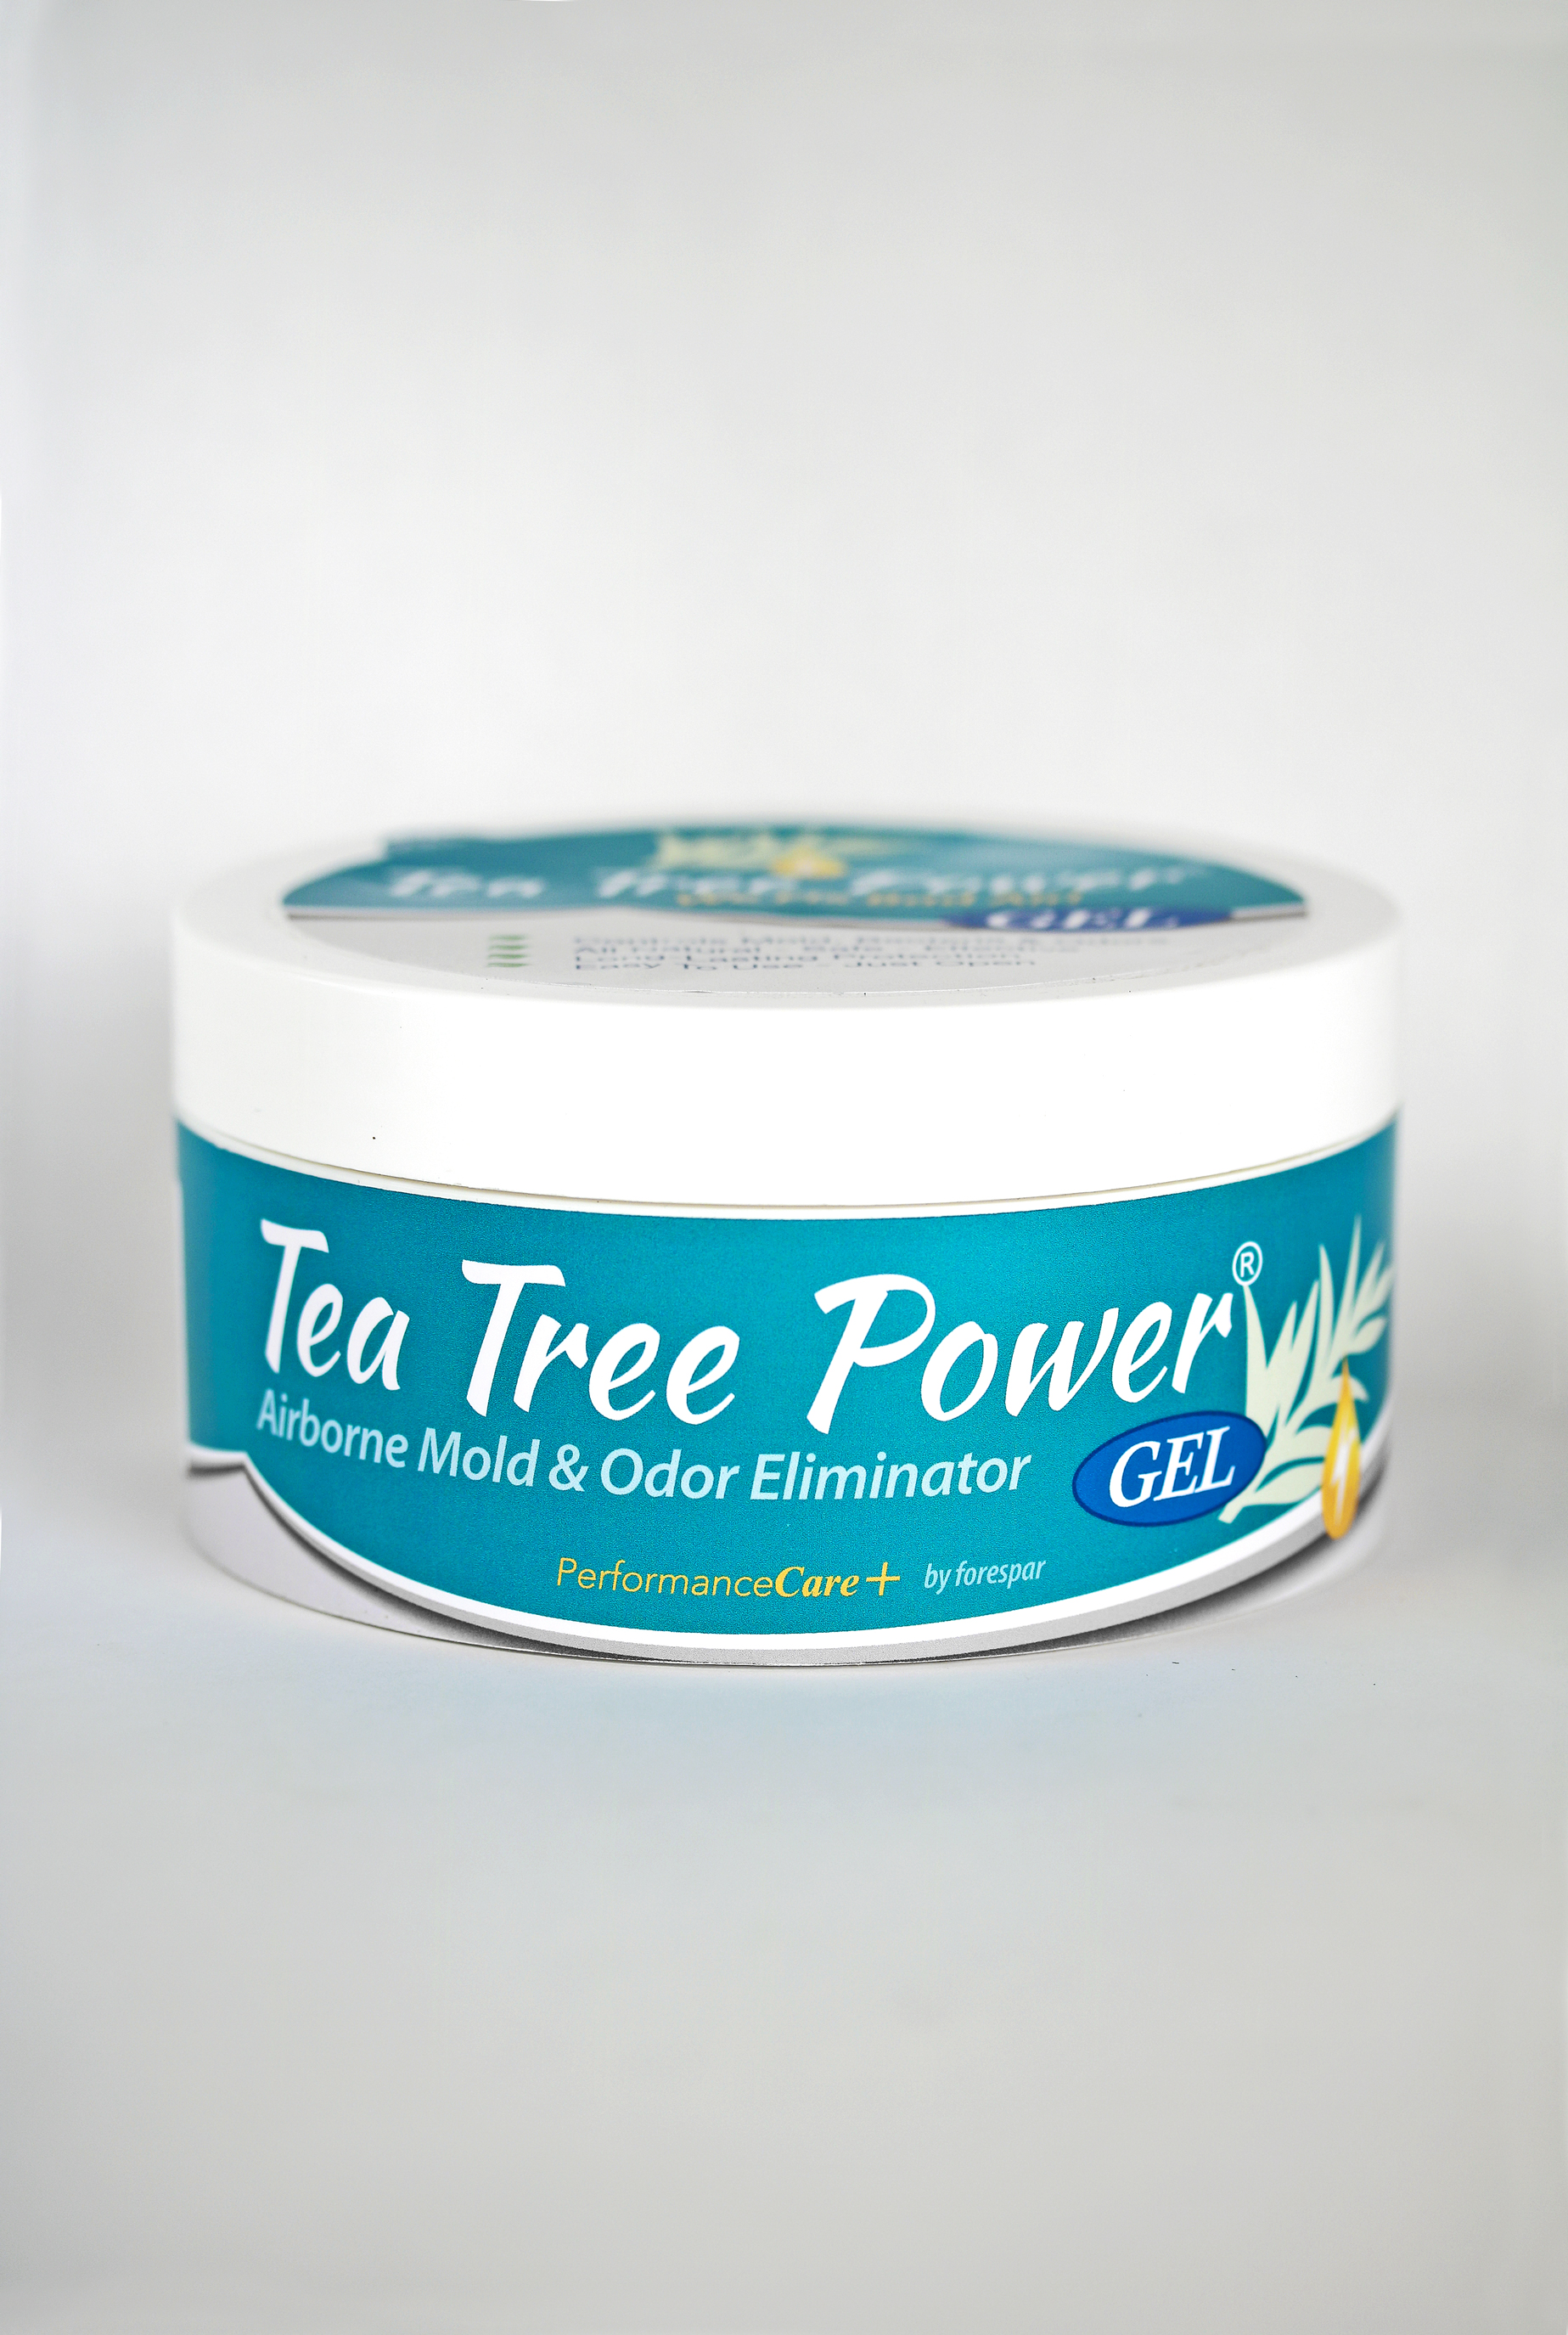 Tea Tree Power™ gel, 16 oz.